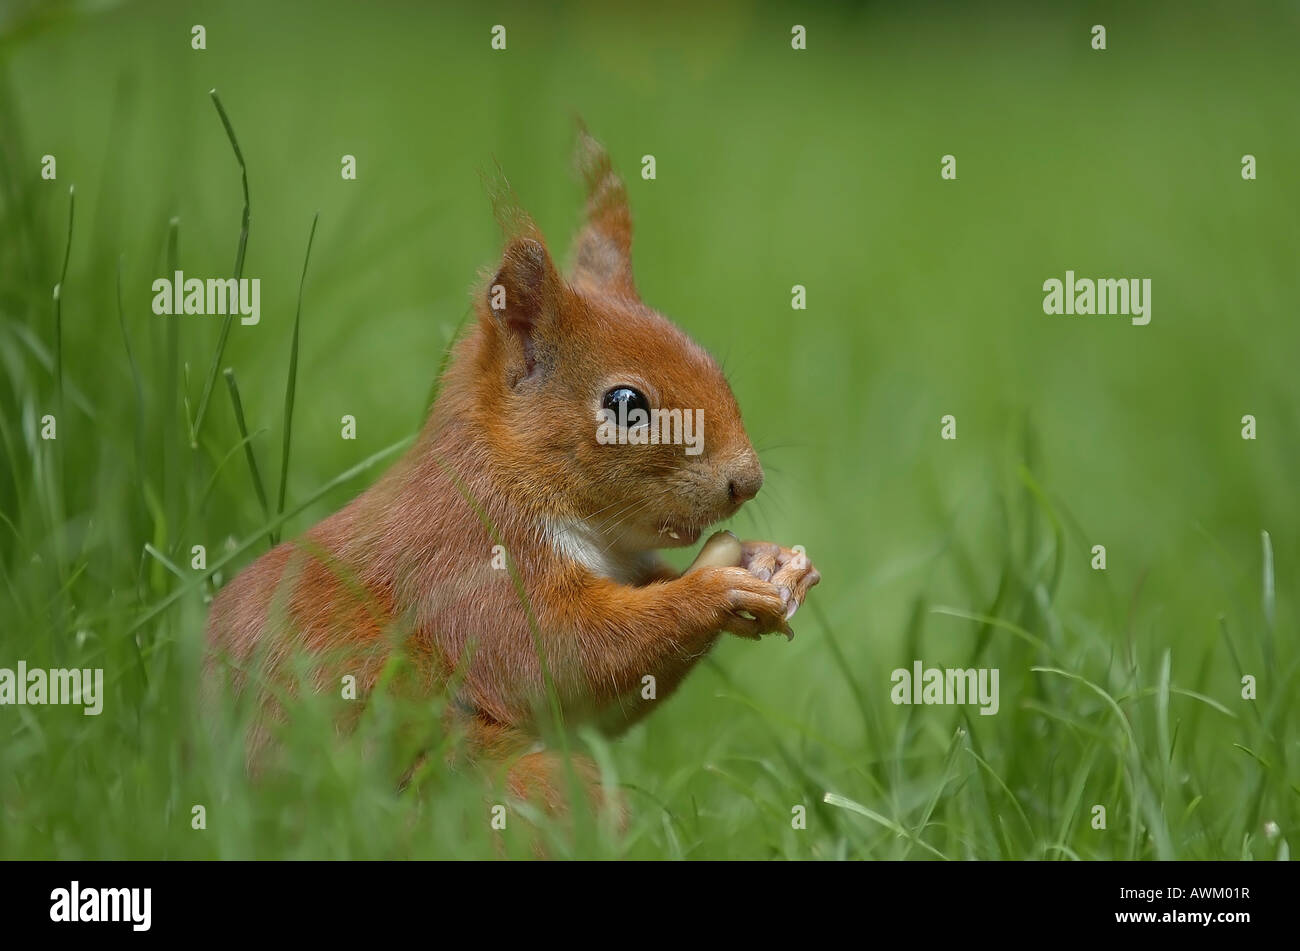 Squirrel (Sciuridae) - Stock Image